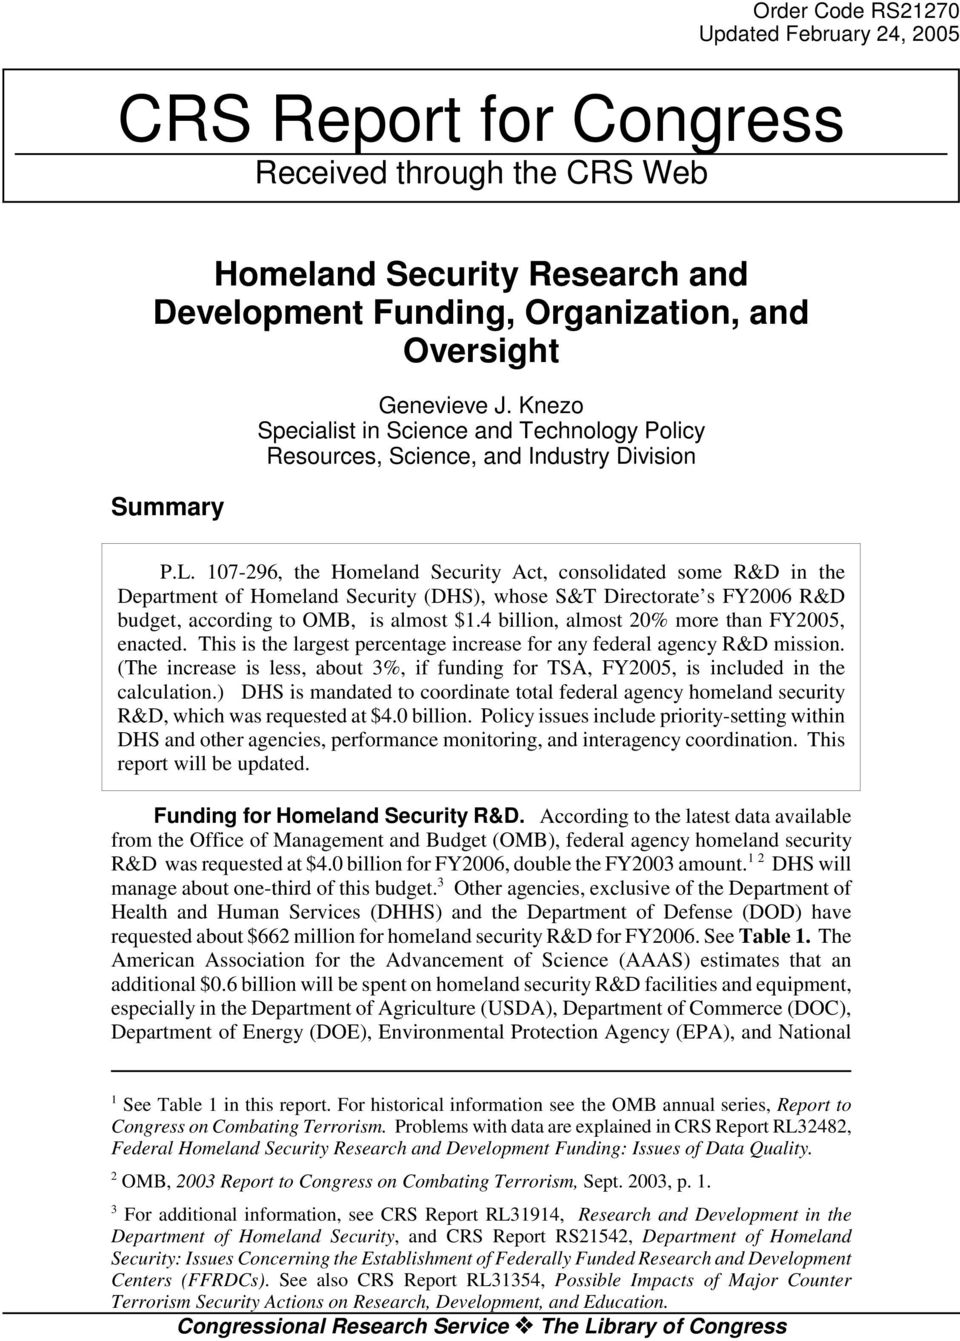 107-296, the Homeland Security Act, consolidated some R&D in the Department of Homeland Security (DHS), whose S&T Directorate s FY2006 R&D budget, according to OMB, is almost $1.